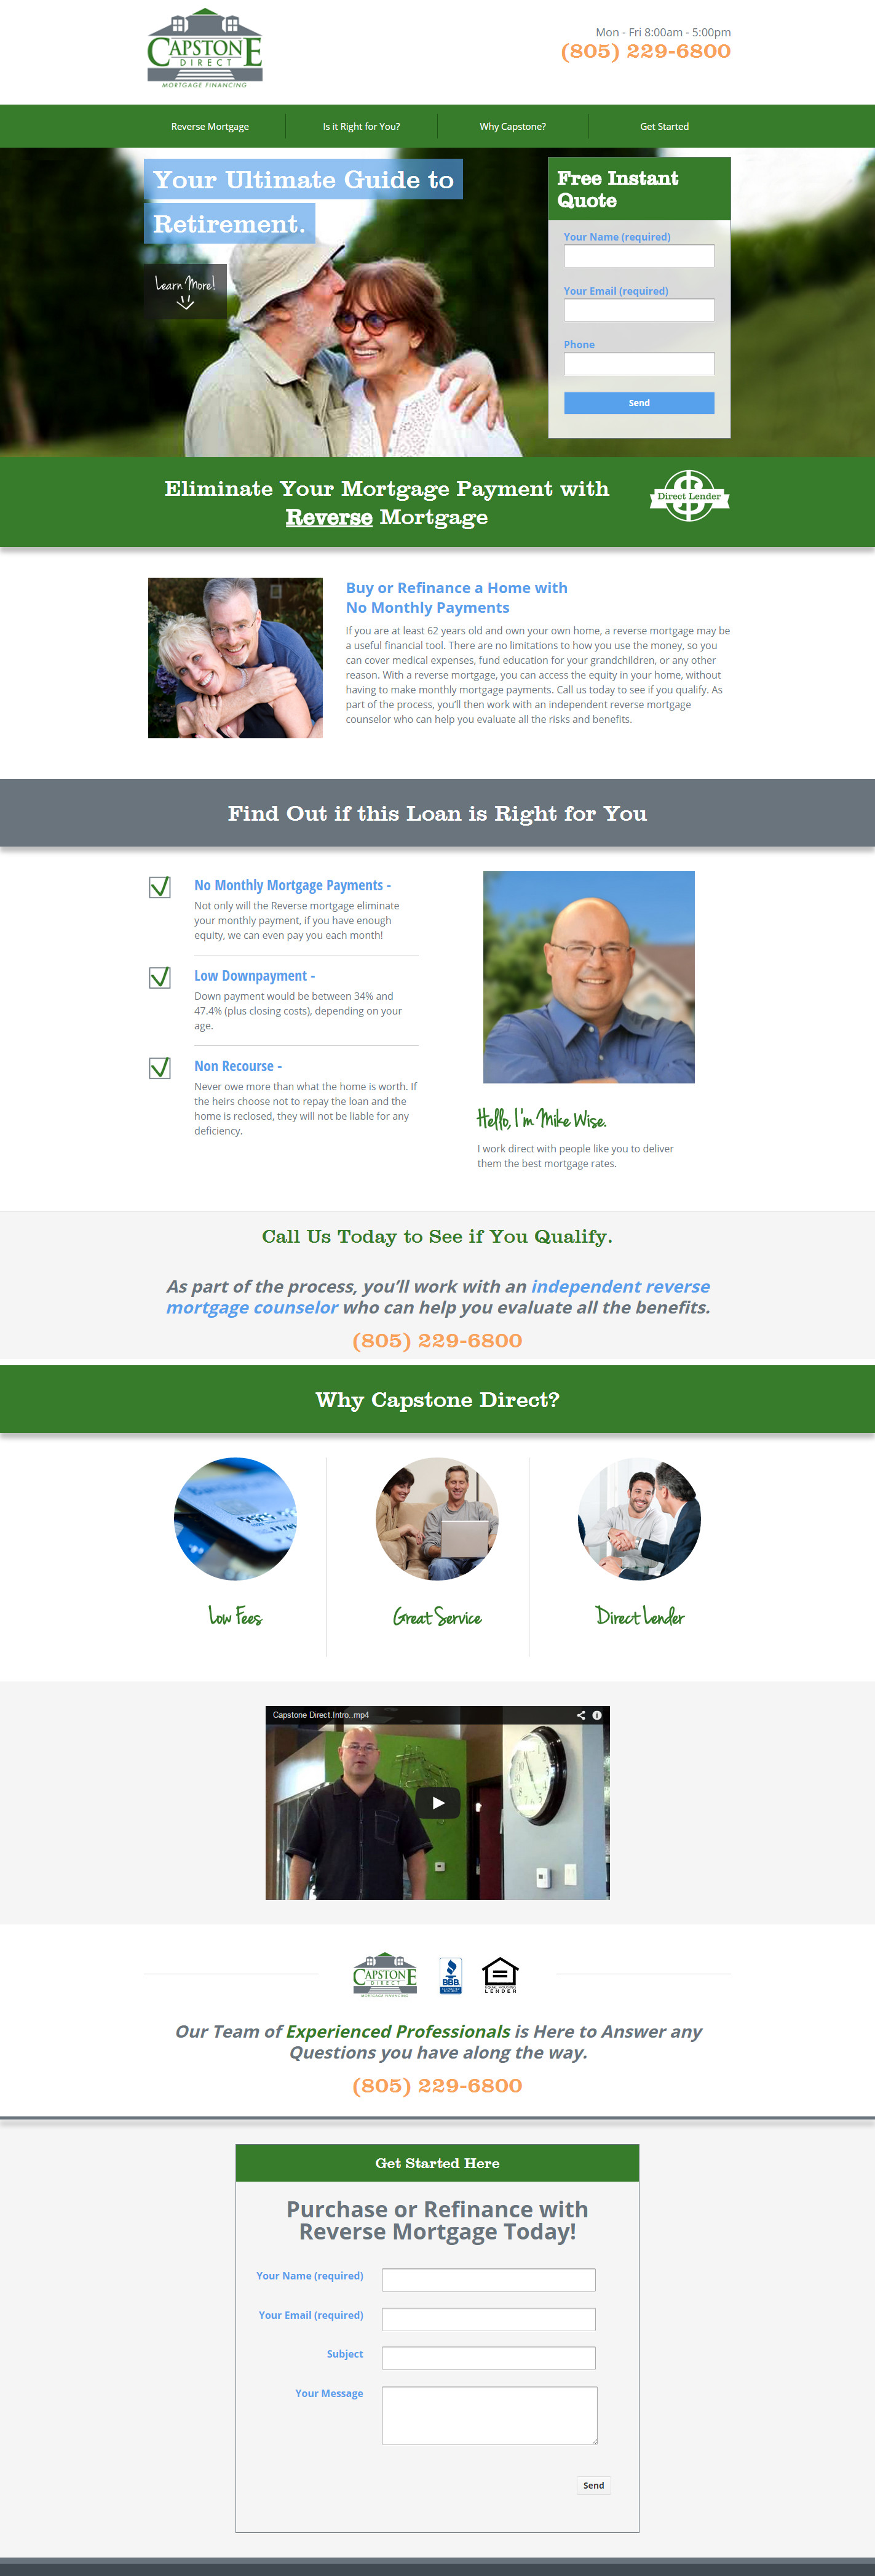 Landing Page Example - Capstone Direct